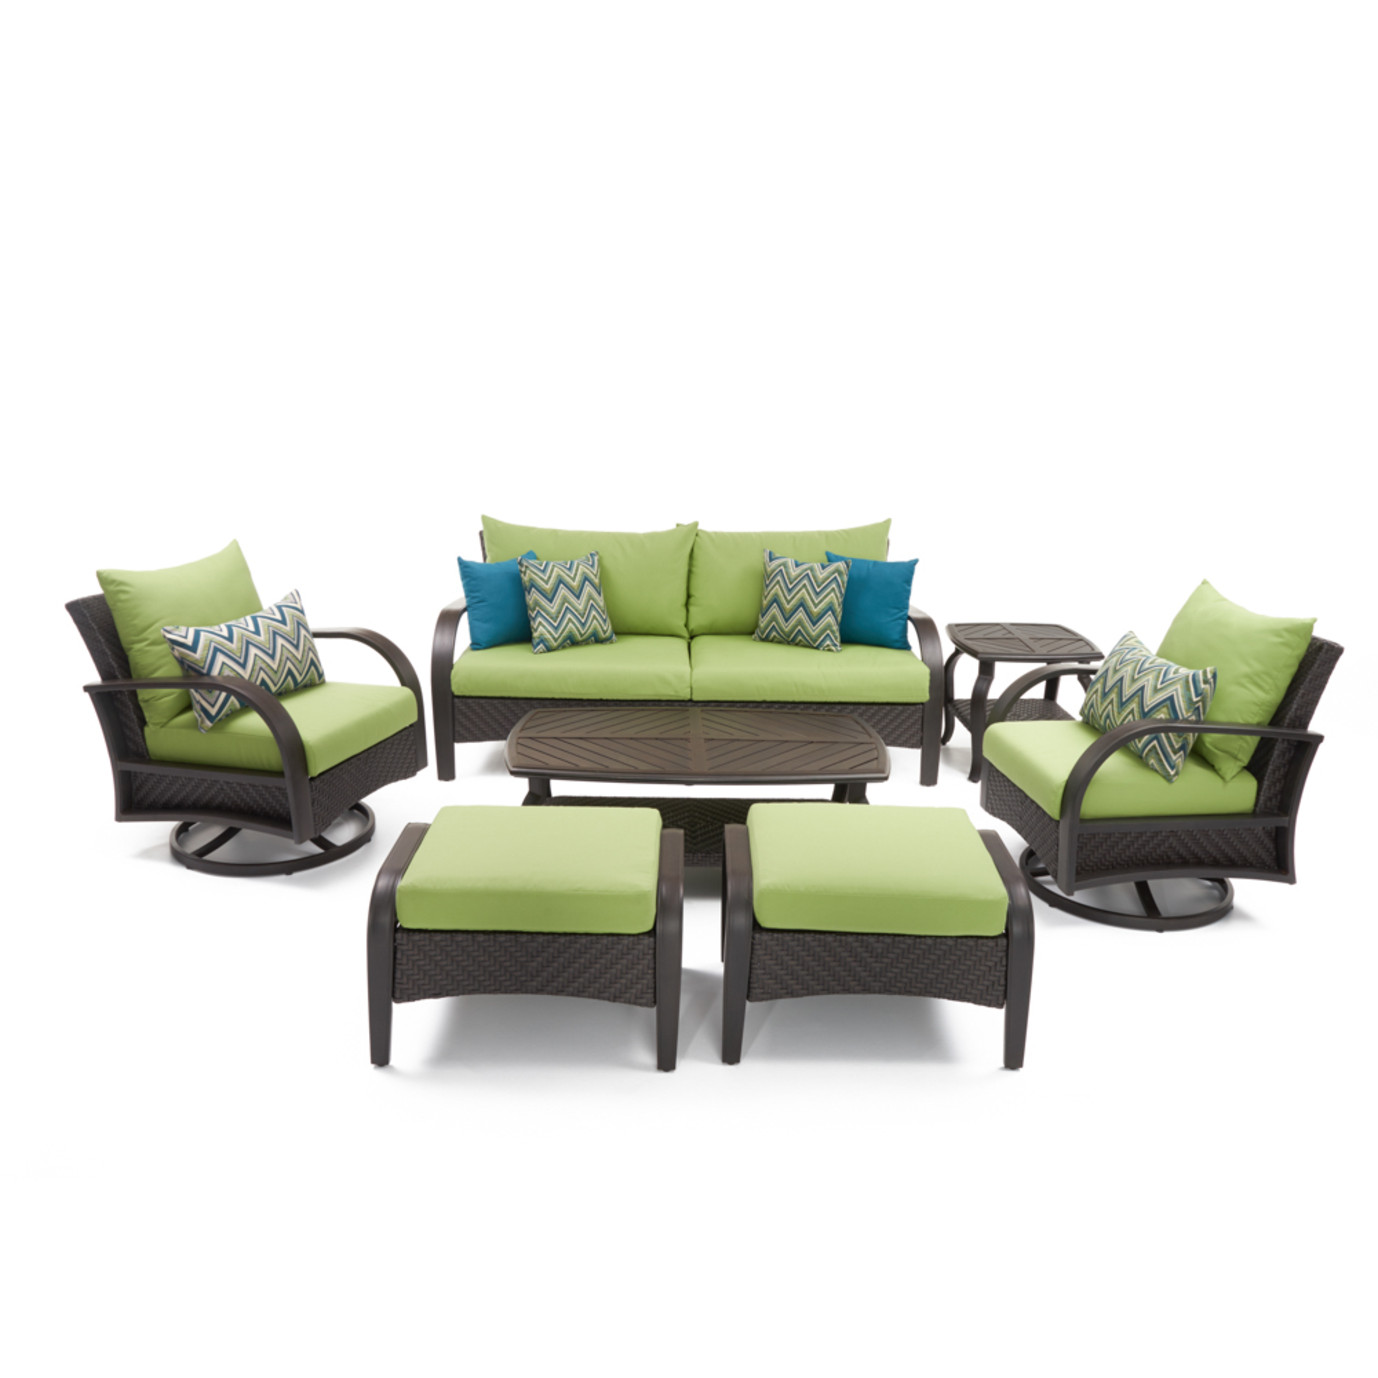 Barcelo™ 7pc Motion Club Deep Seating Set - Ginkgo Green